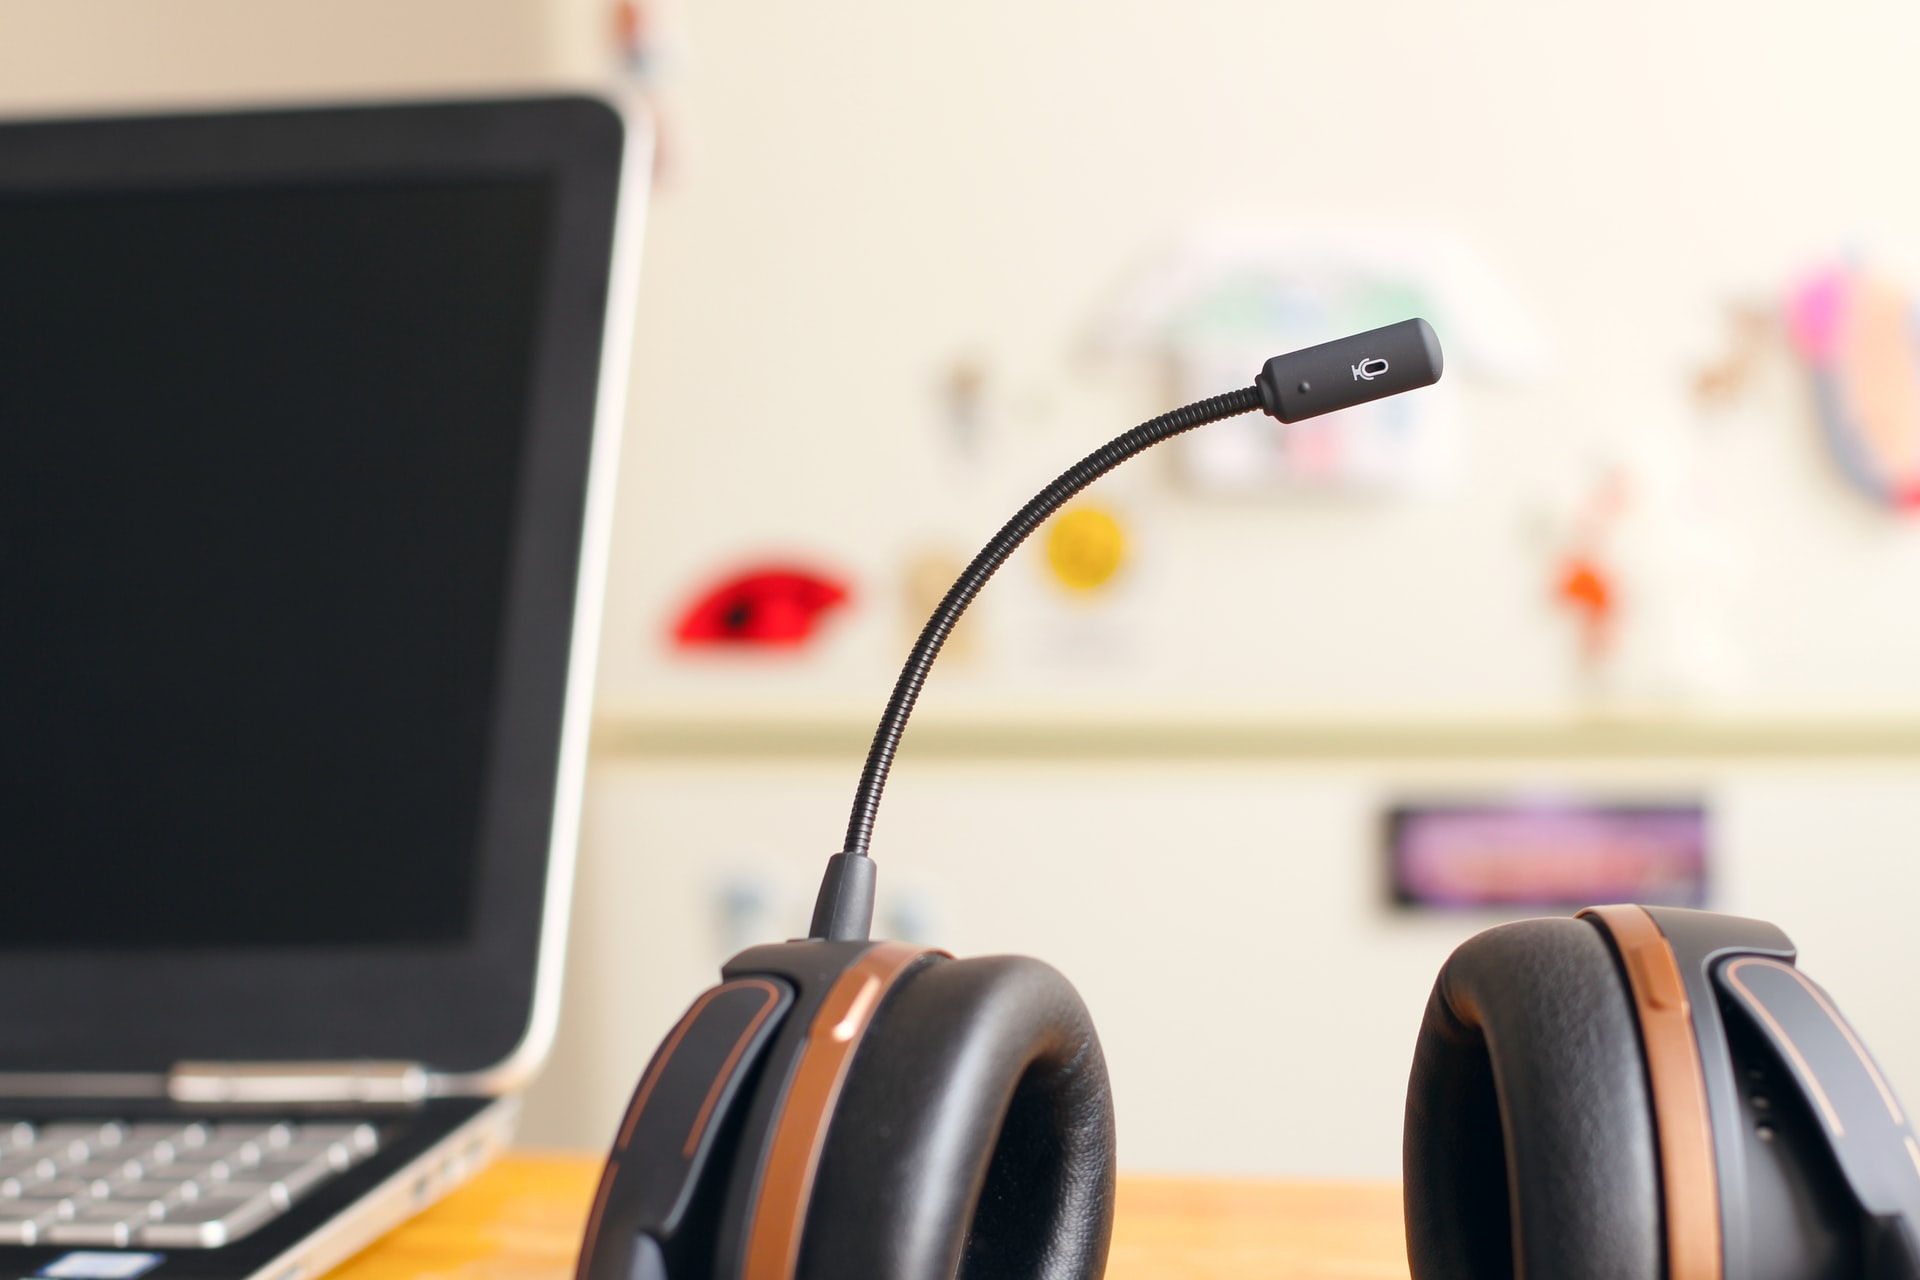 Headset on a table.